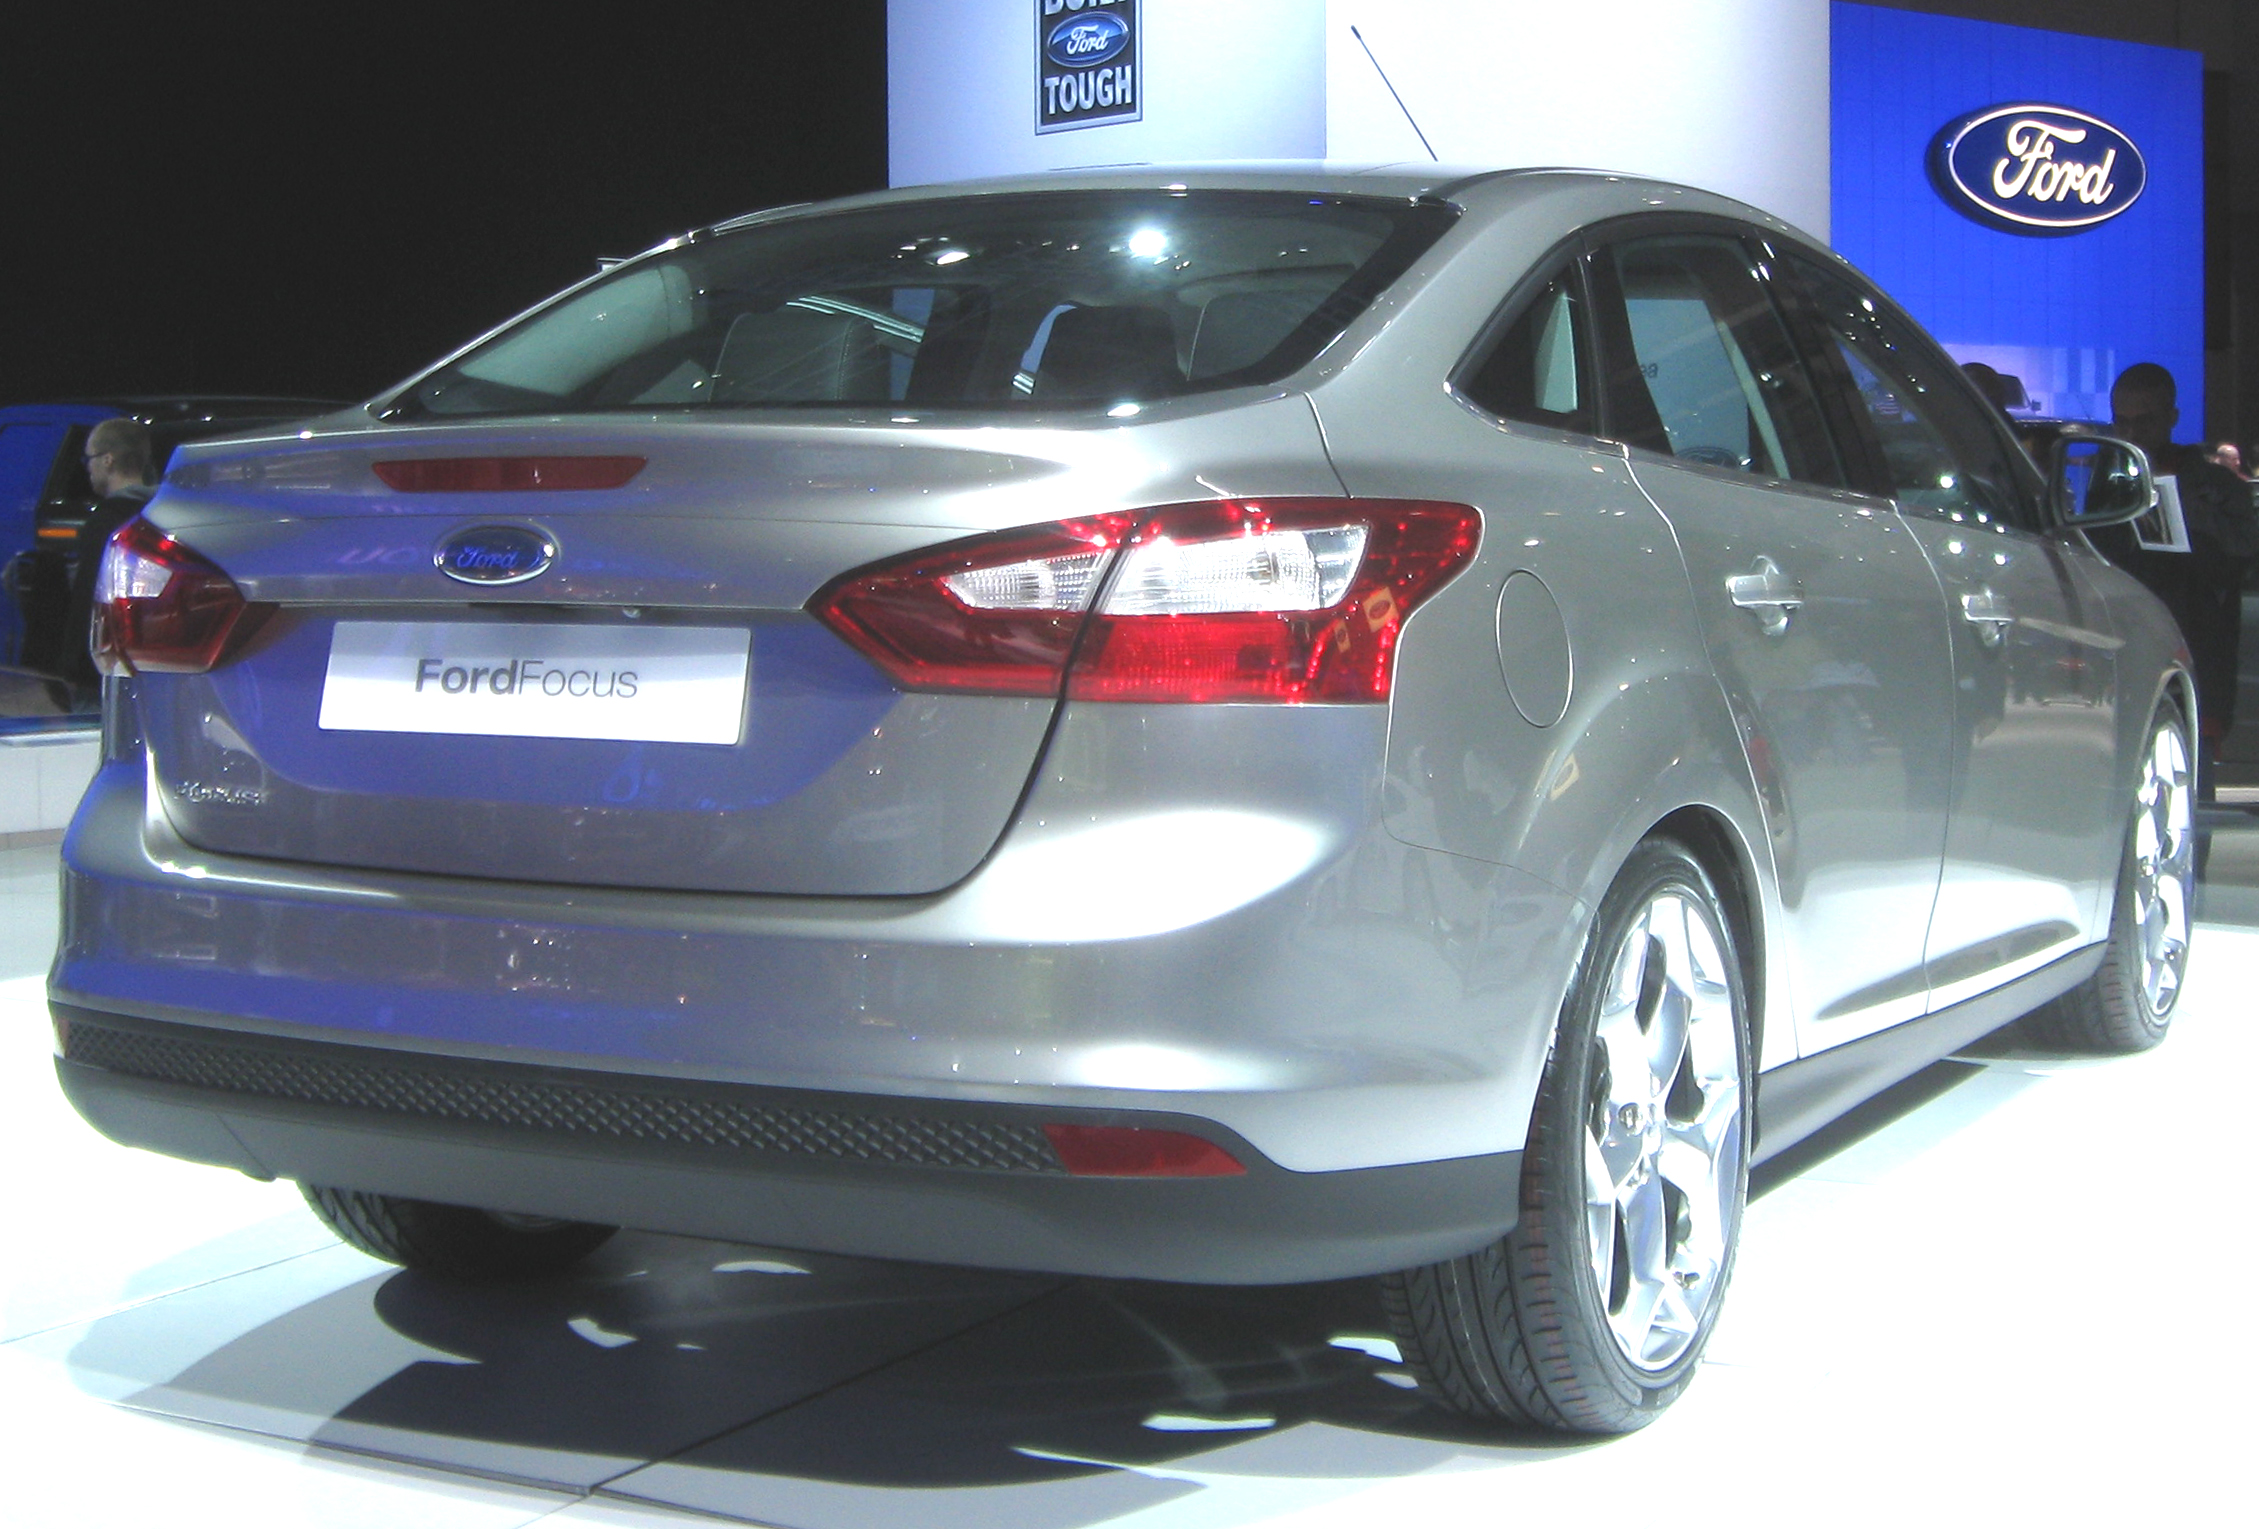 Ford Focus Sedan - 2259 x 1529, 10 из 14